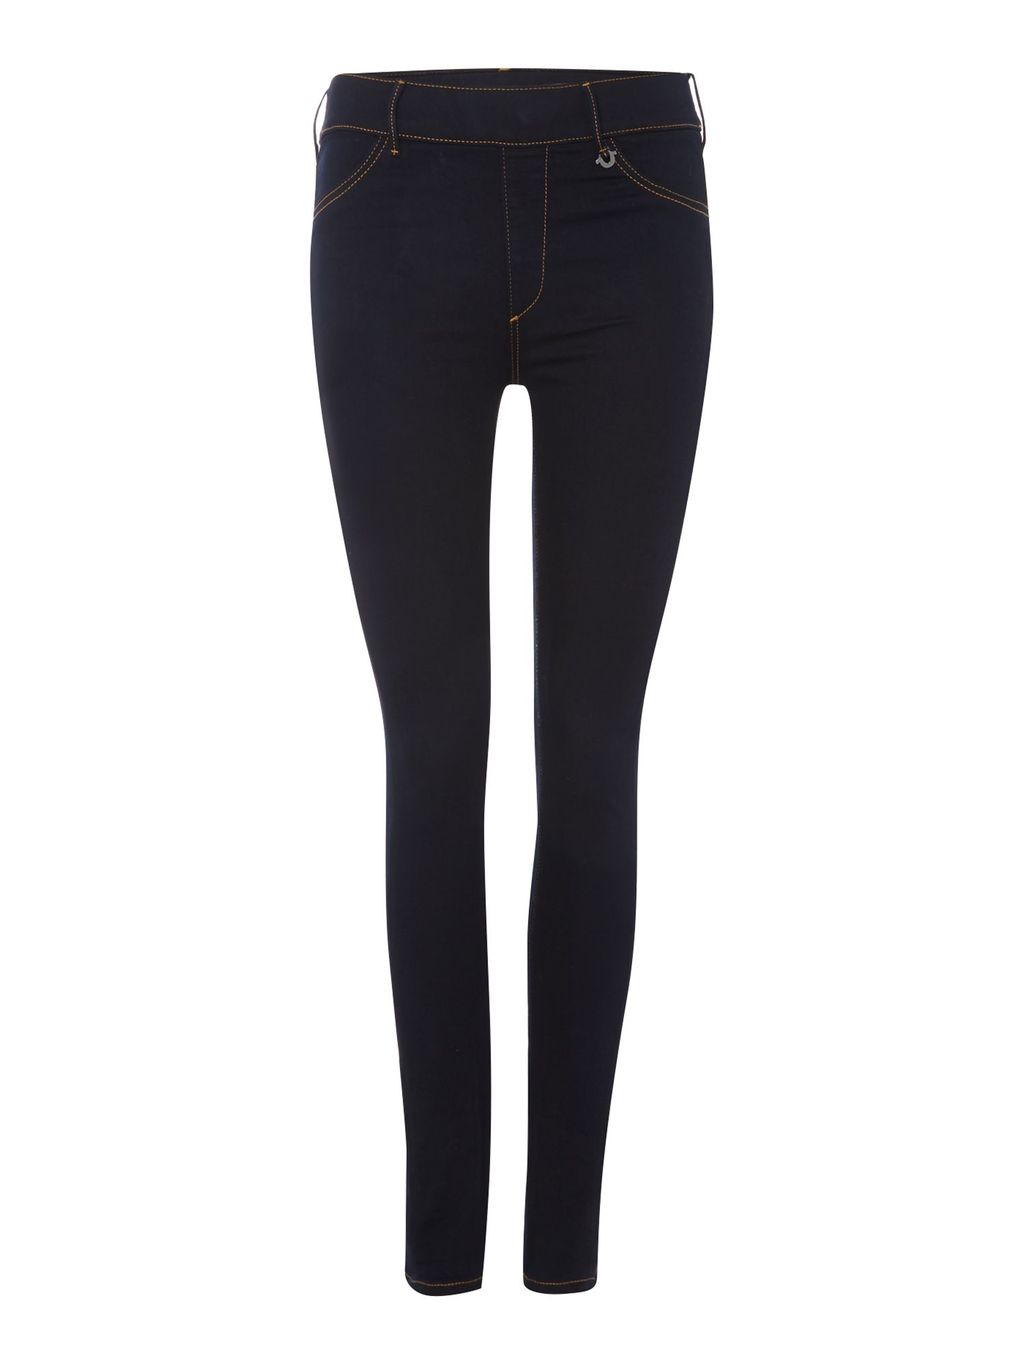 Runway Legging Jean In Body Rinse, Denim Rinse - style: skinny leg; length: standard; pattern: plain; pocket detail: traditional 5 pocket; waist: mid/regular rise; predominant colour: navy; occasions: casual; fibres: cotton - stretch; texture group: denim; pattern type: fabric; season: s/s 2016; wardrobe: basic